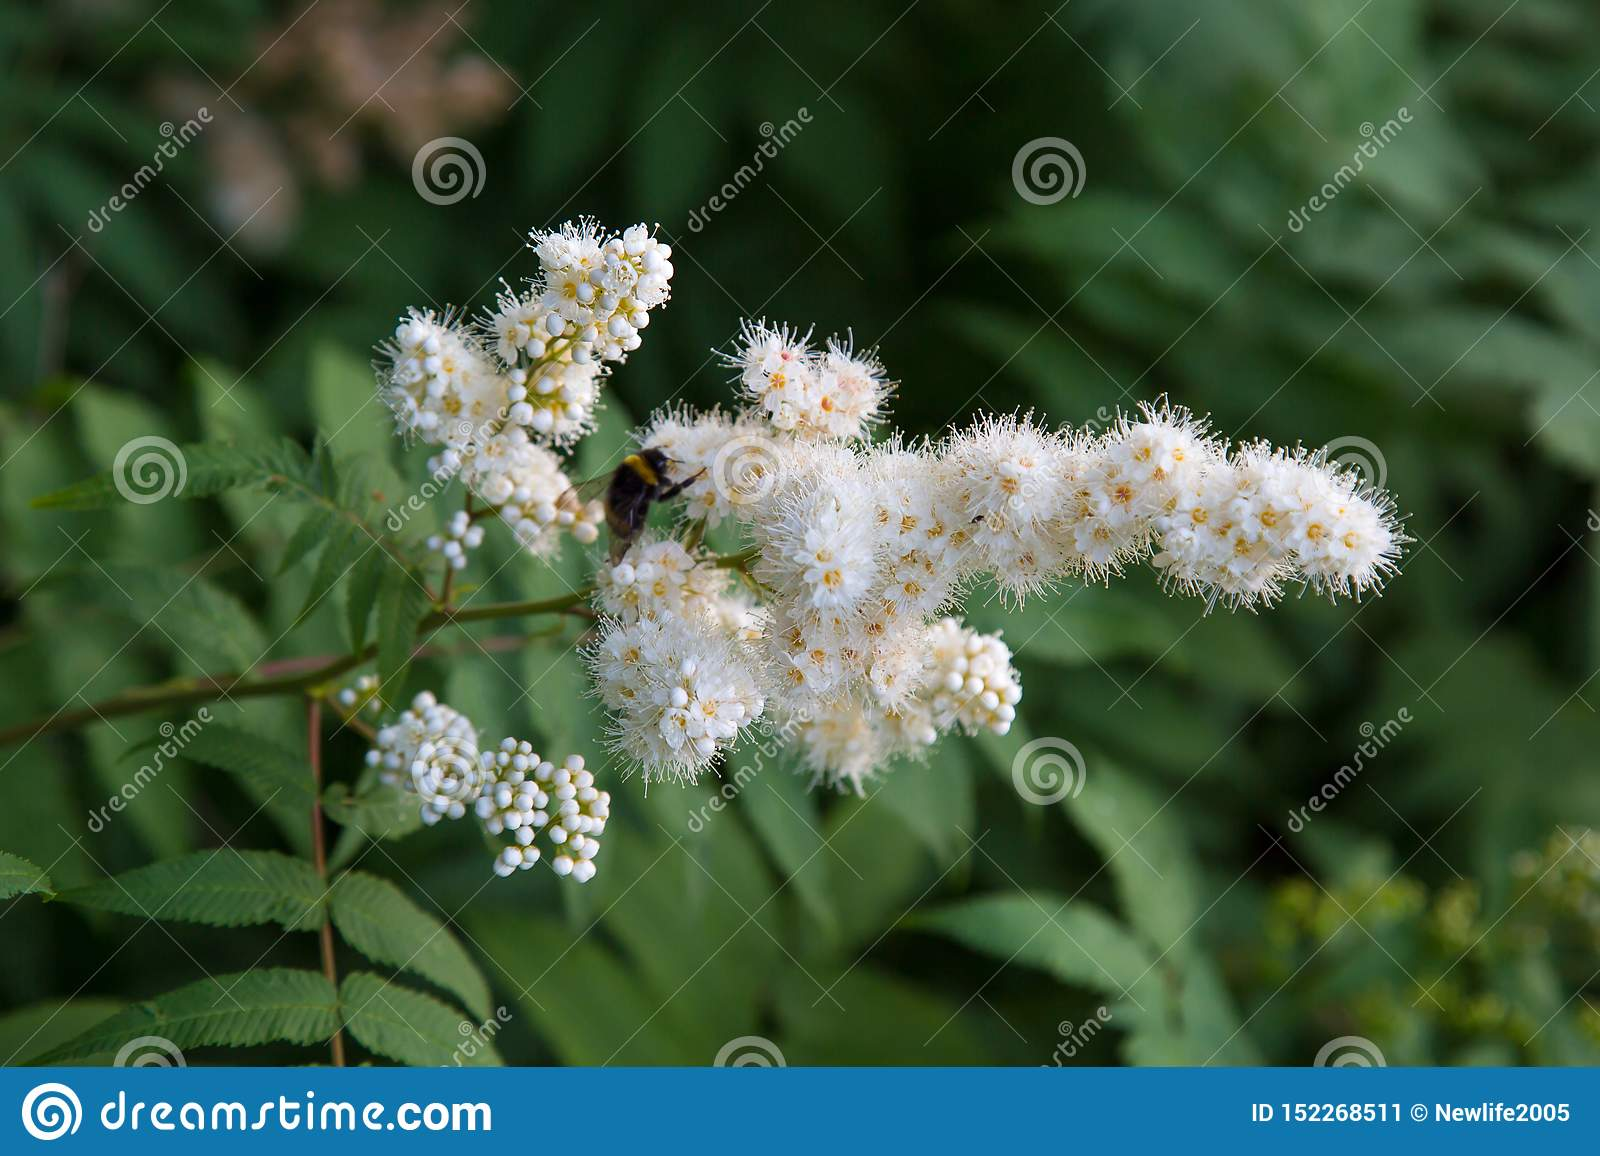 White flowers of a mountain ash with a bumblebee on a background of green leaves. Selective focus.